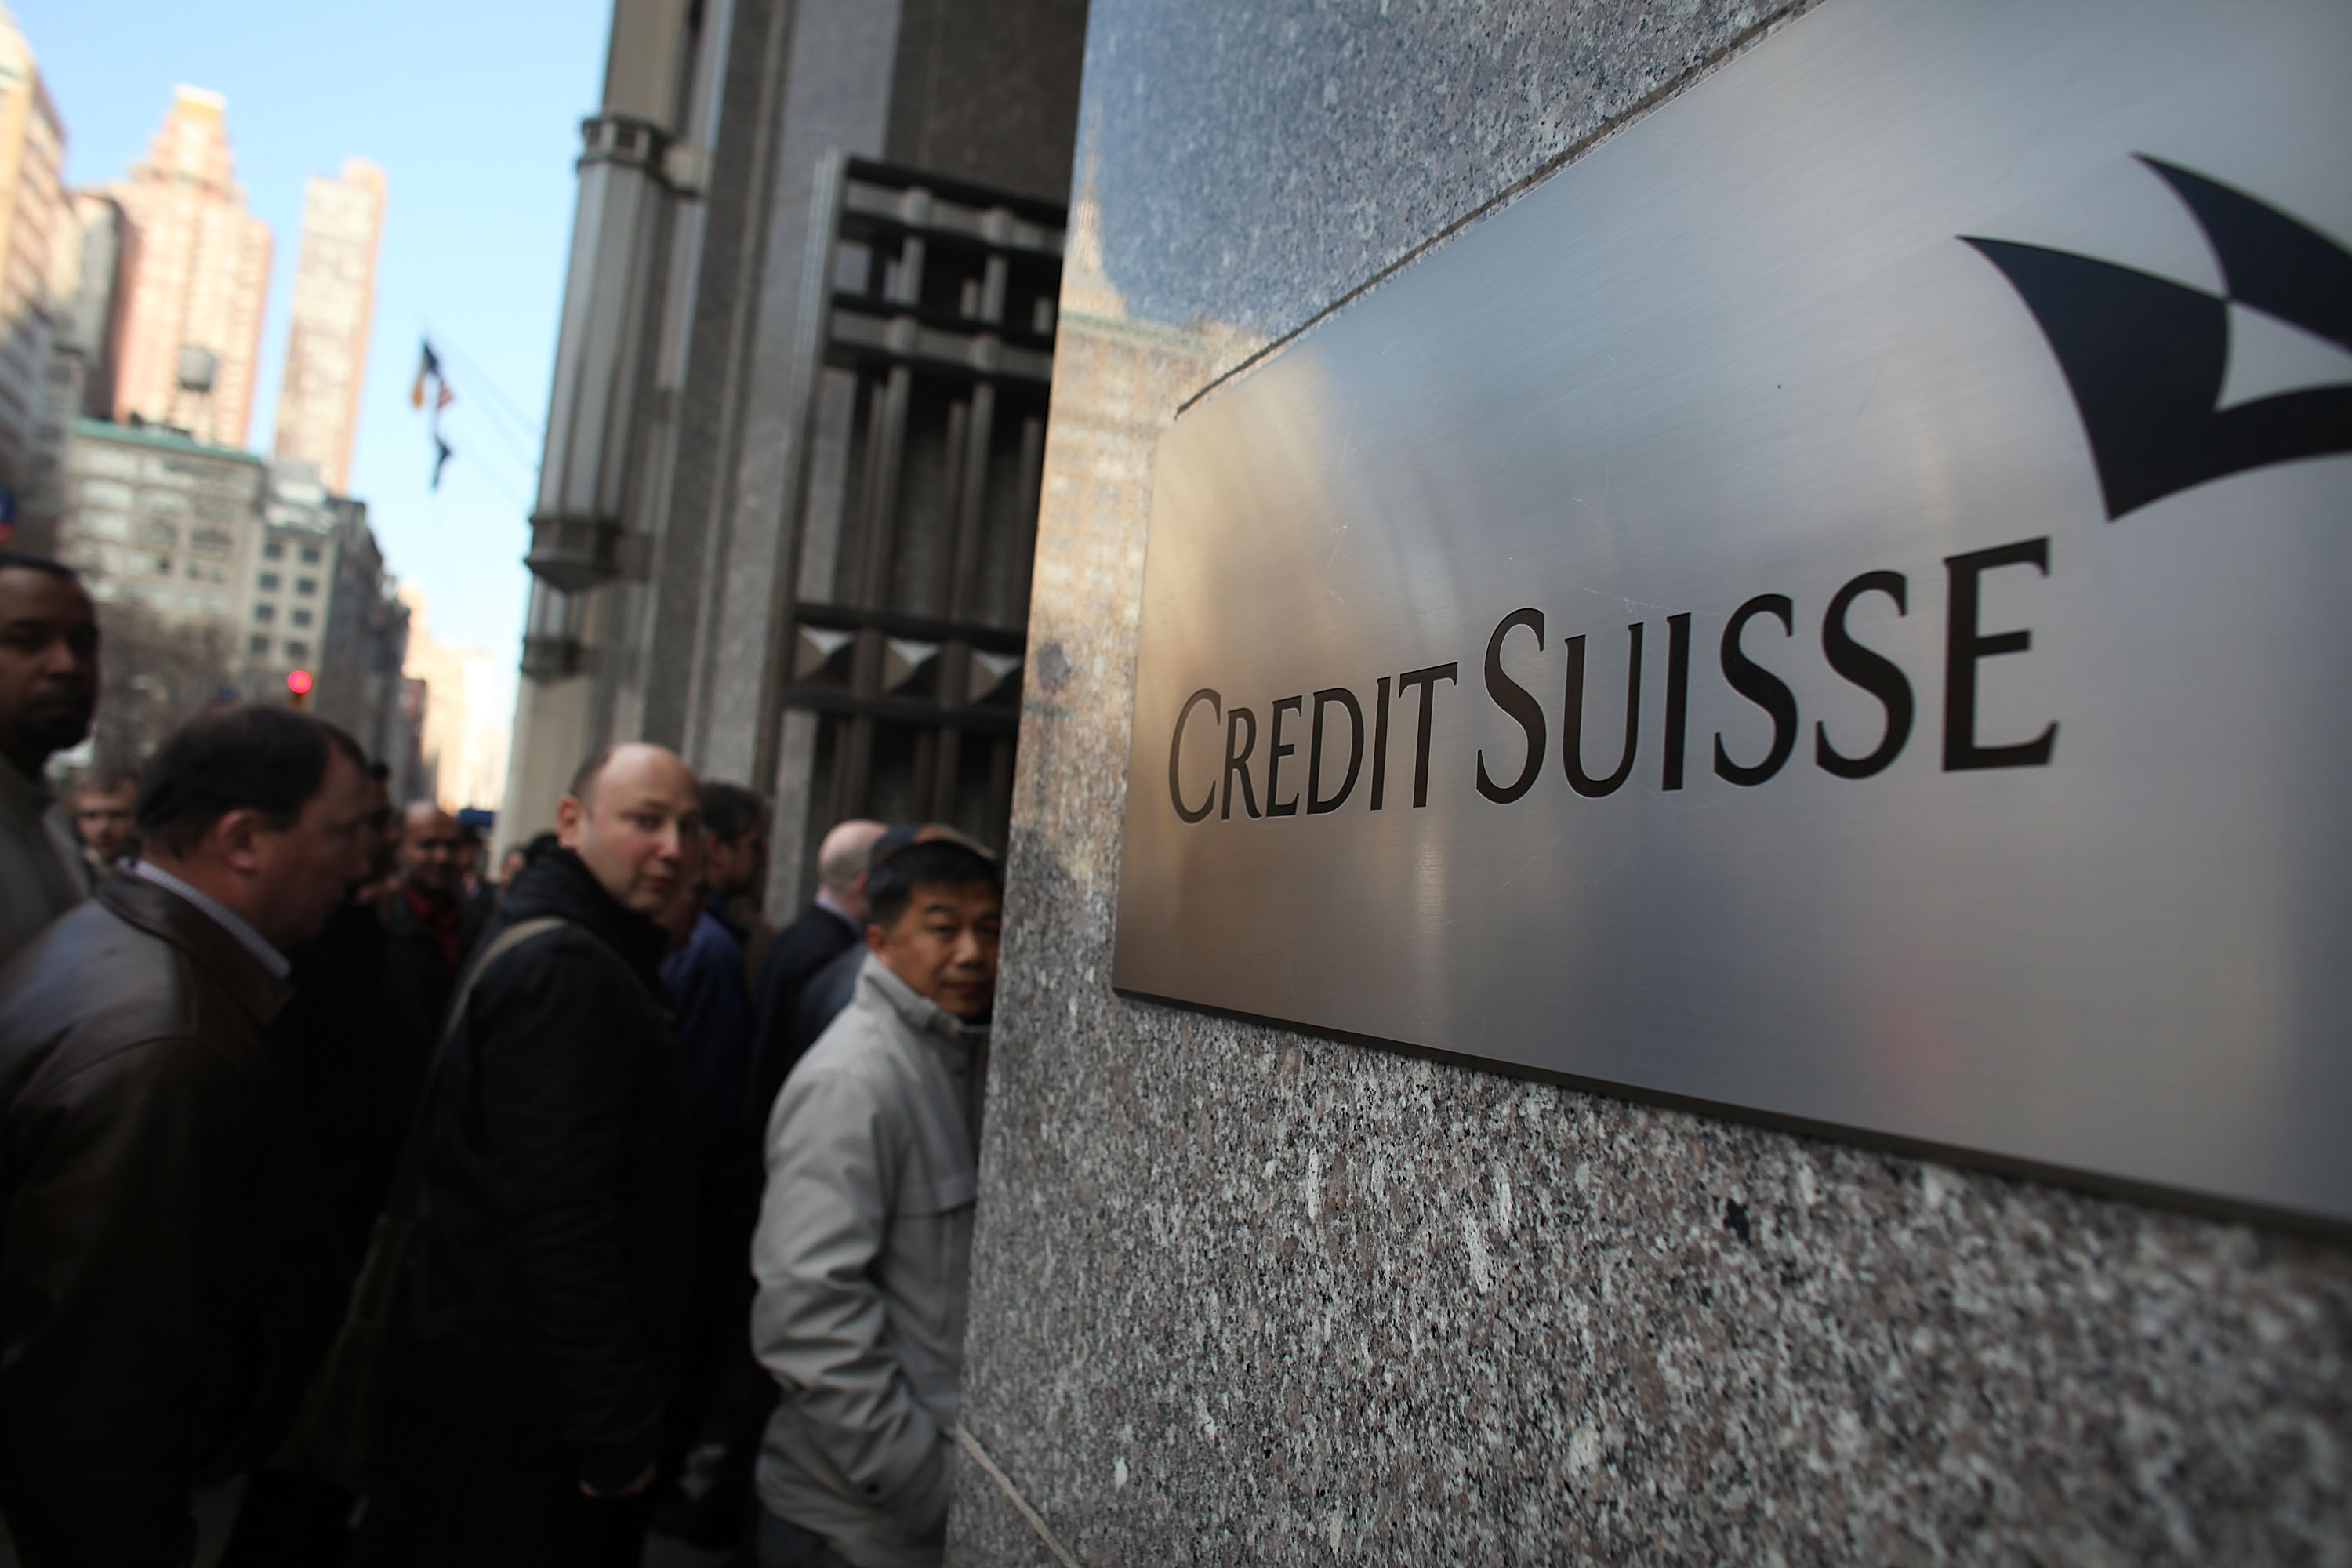 Bomb Scare At Credit Suisse Proves False